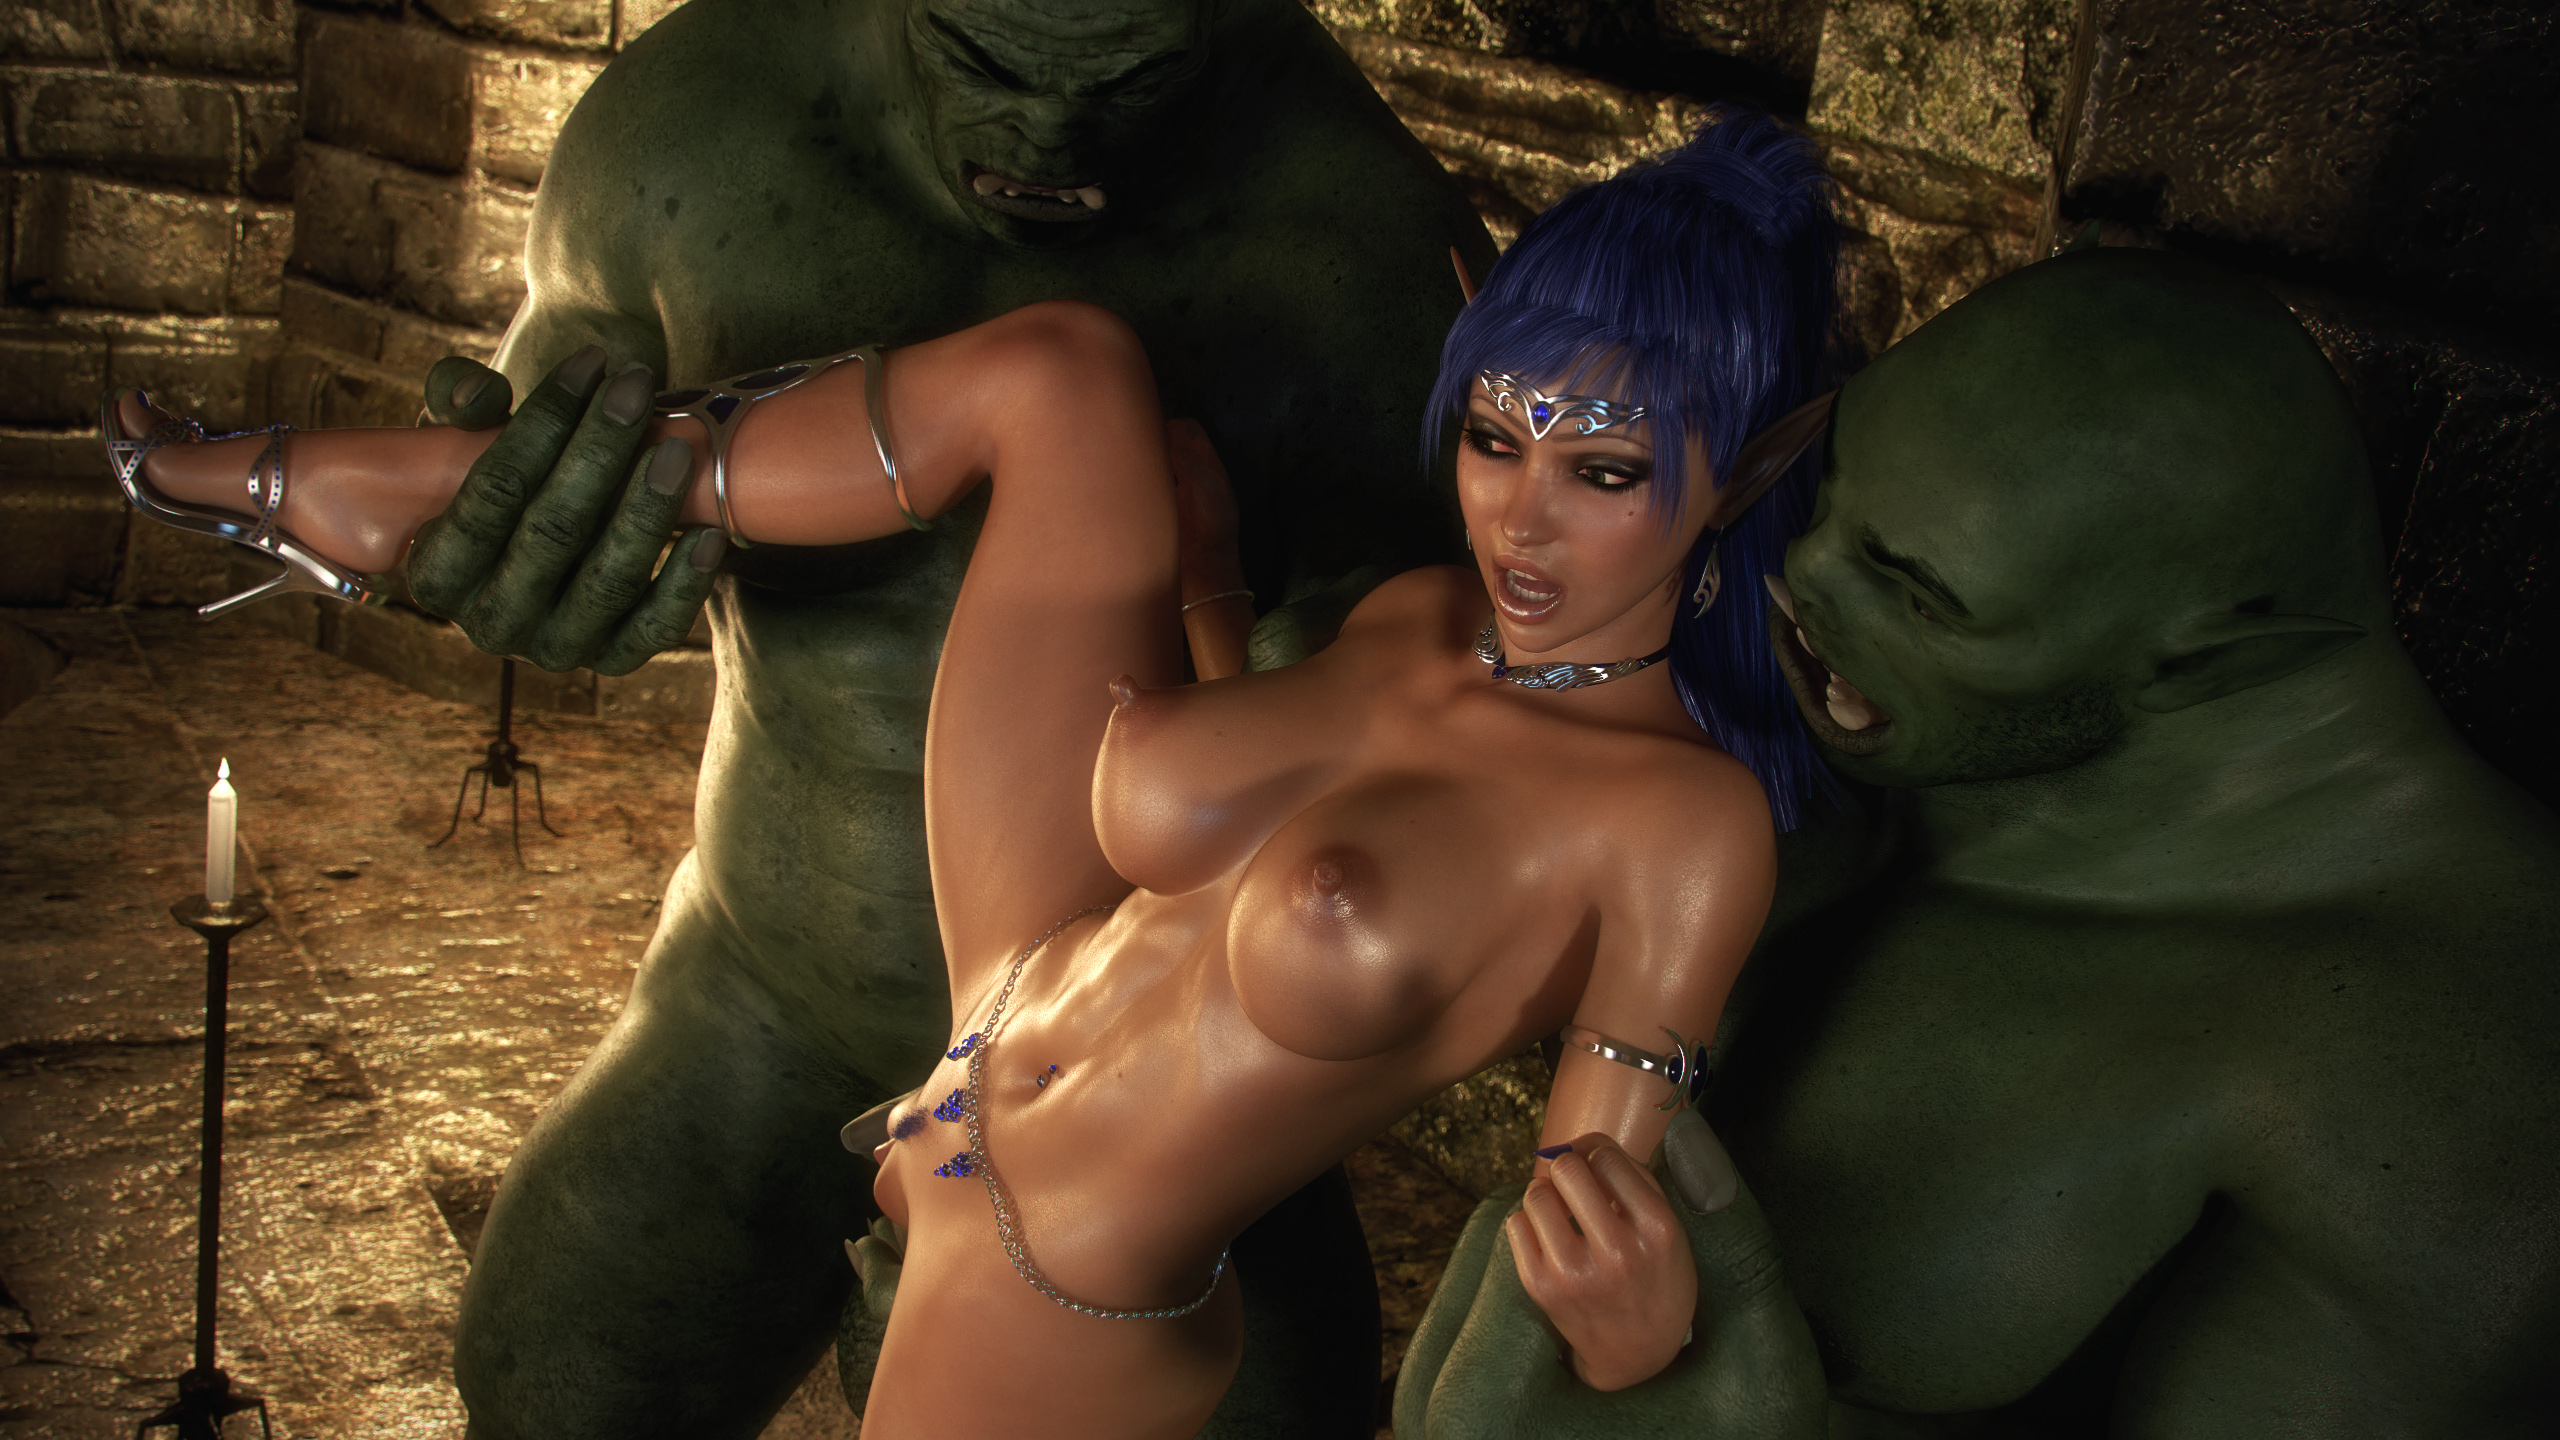 Sex scene from monster's dungeon hentai video